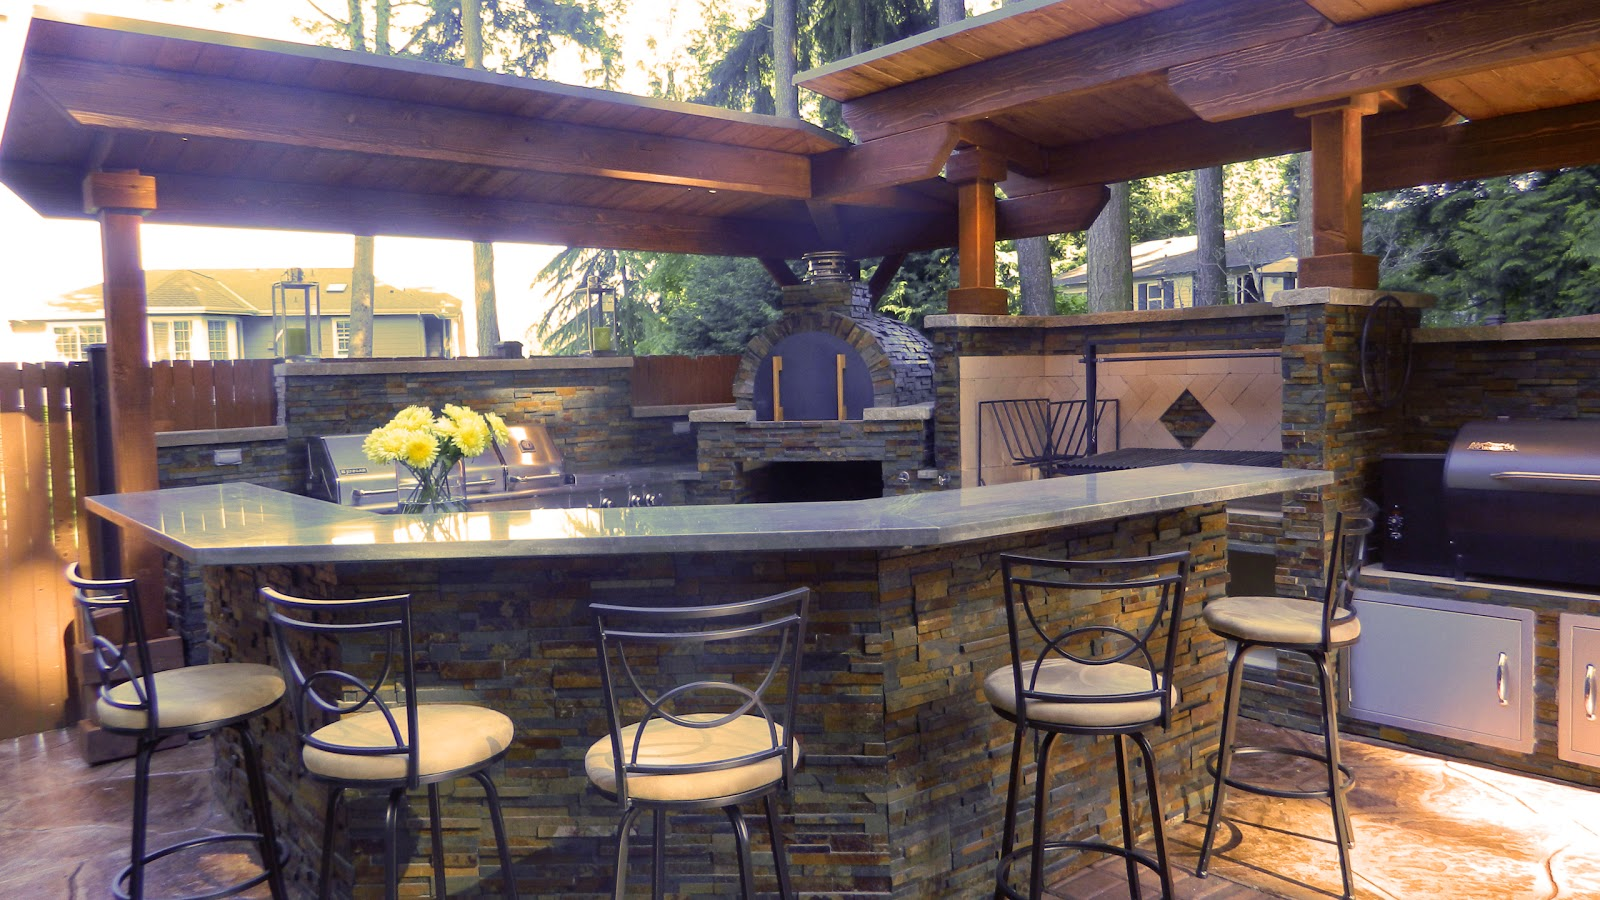 Kitchen cabinets kirkland - Outdoor Kitchen With Argentinian Grill Brickwood Pizza Oven And Smoker In Kirkland Washington